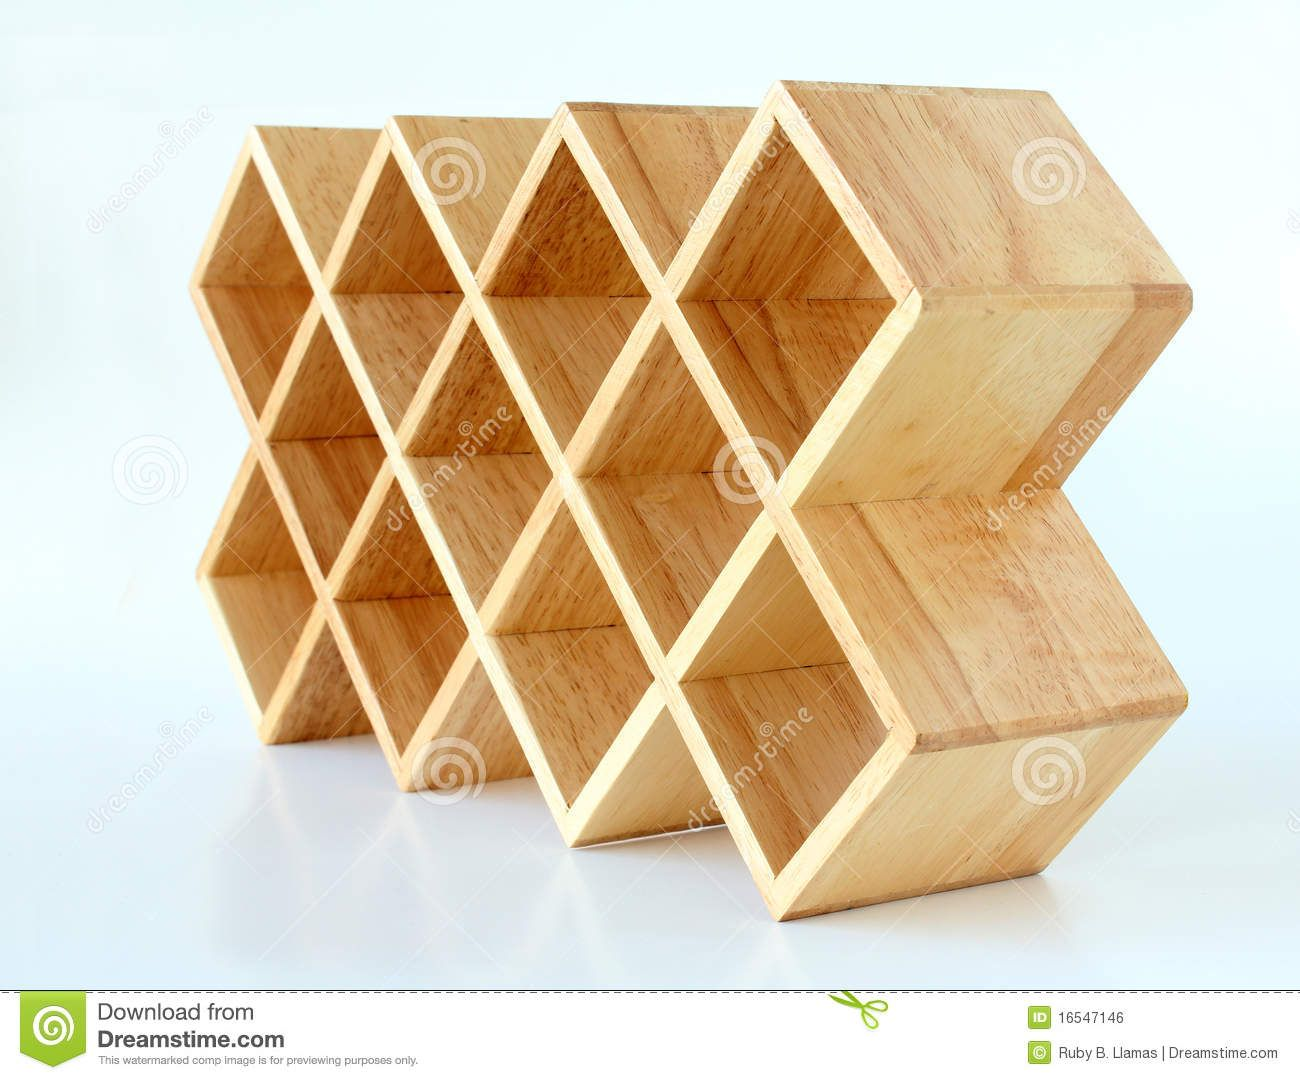 SHOW A few pieces of the everyday lattice from the hardware store ...